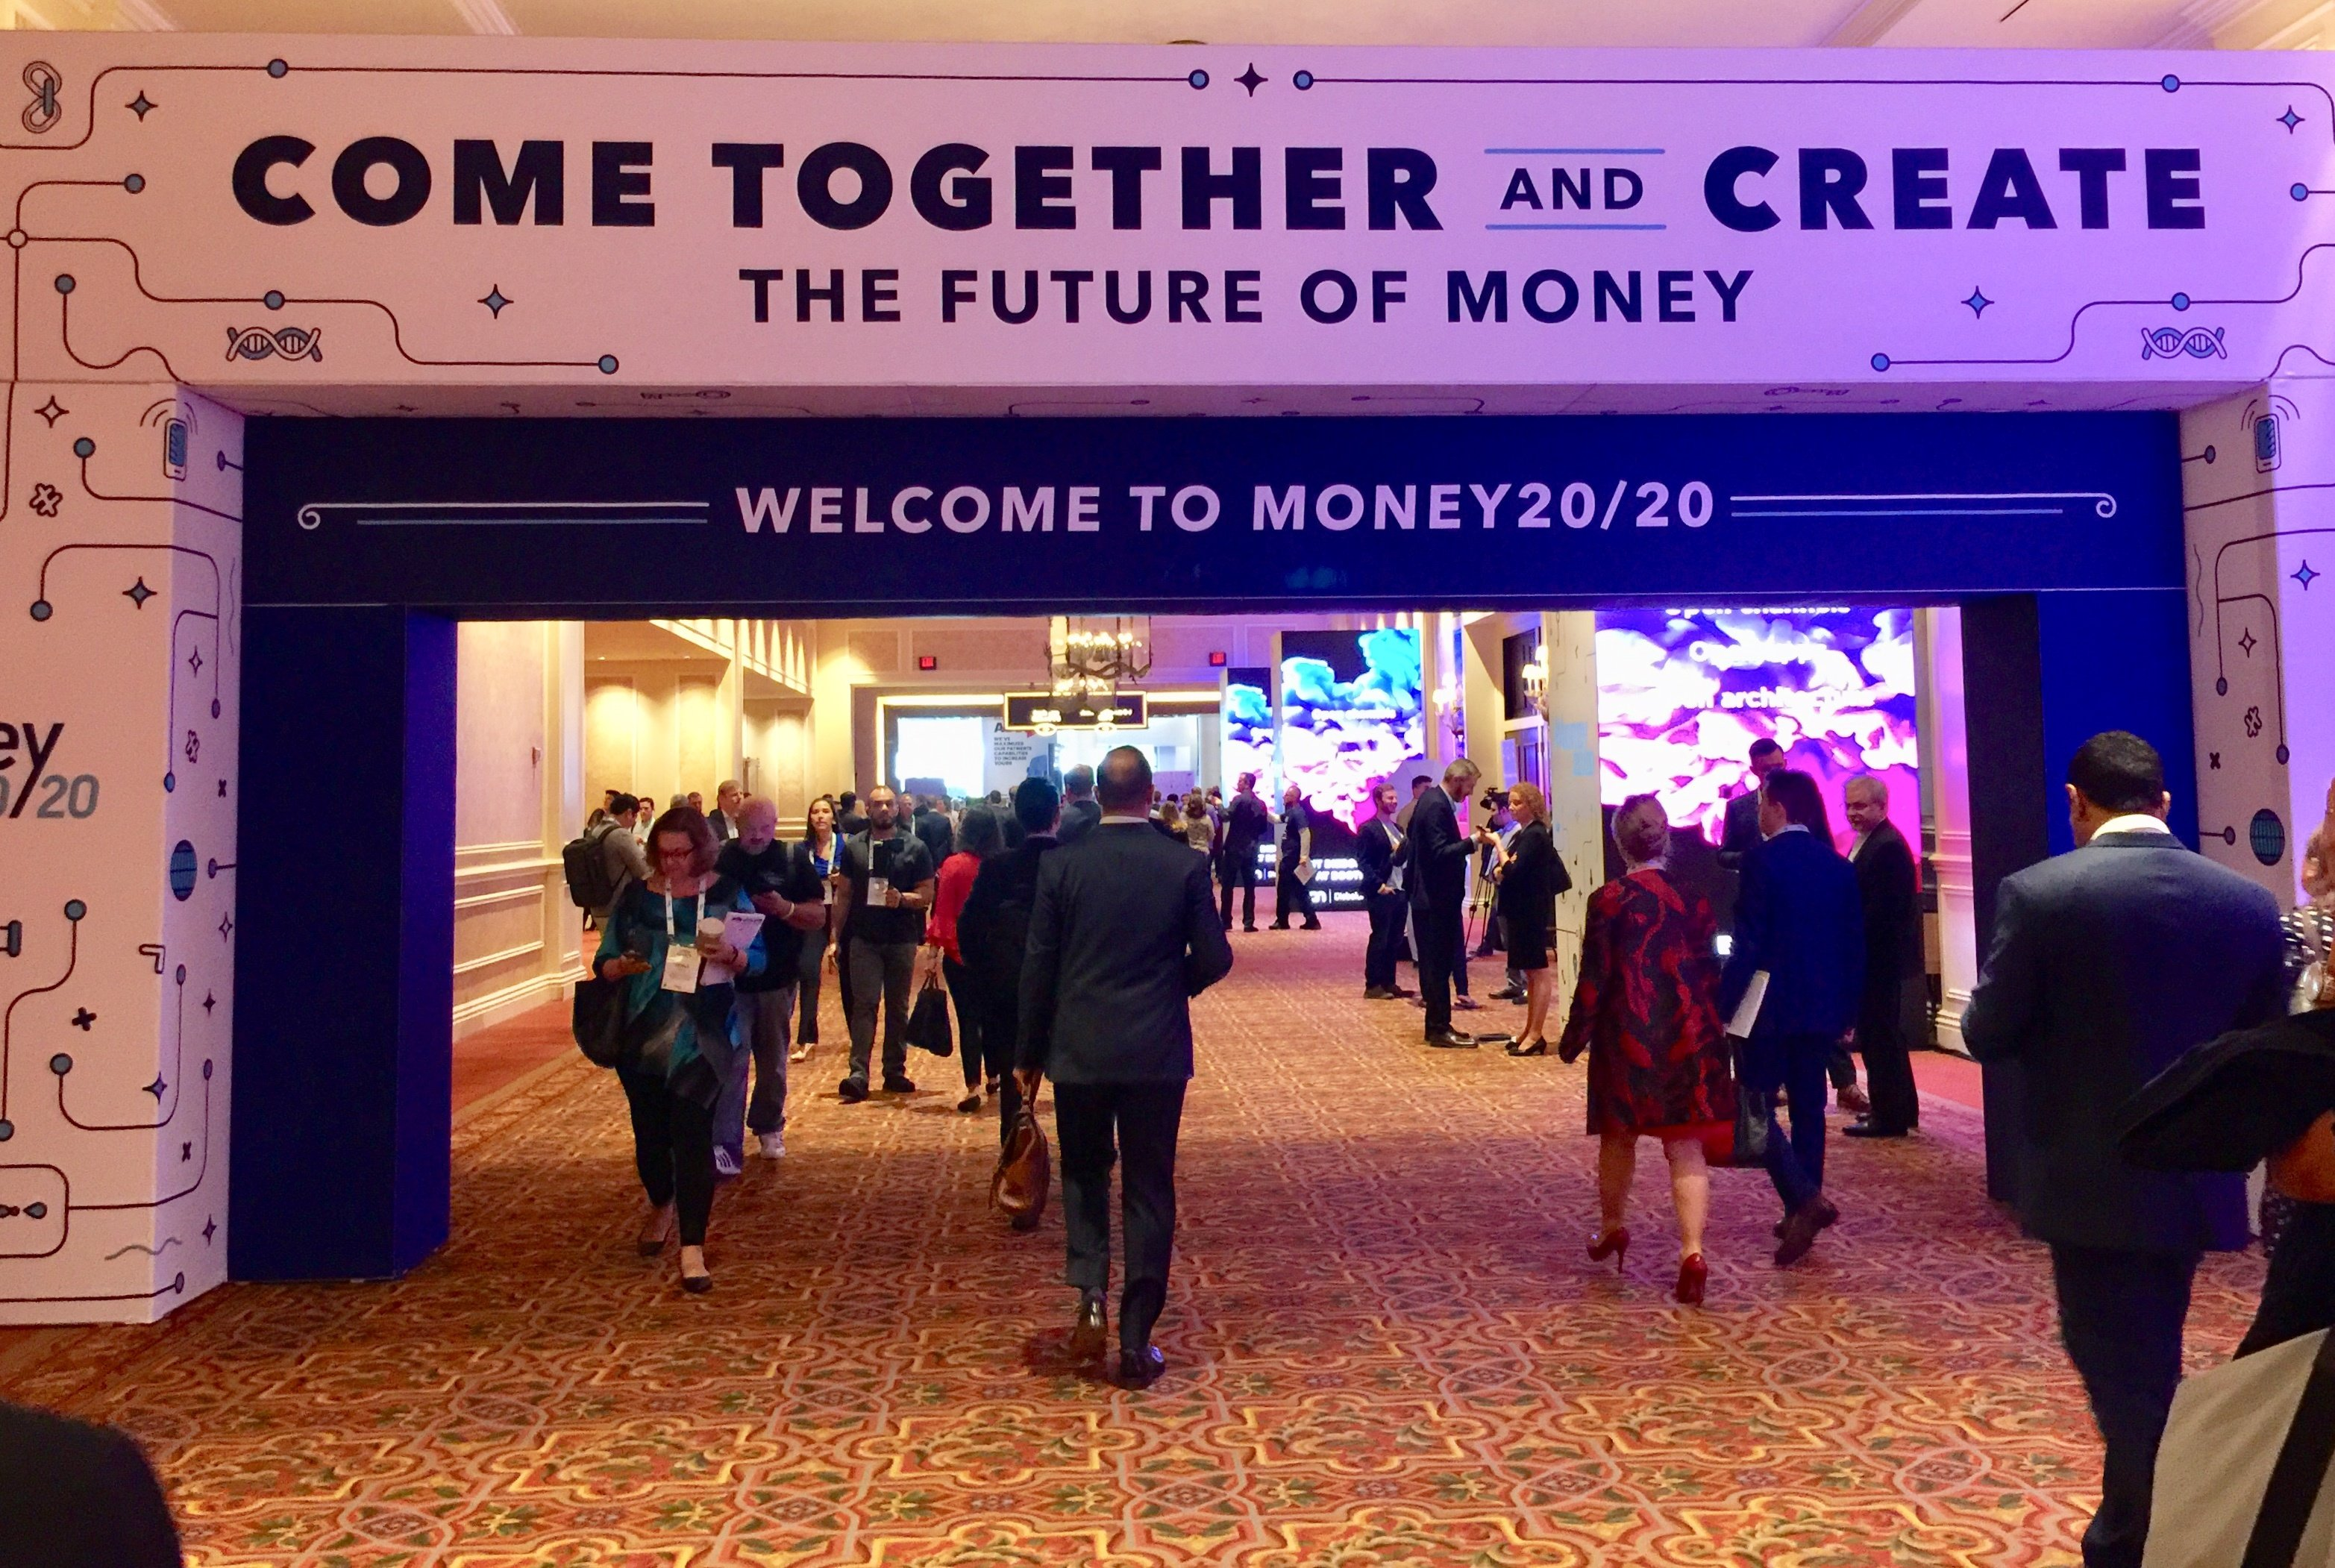 Three Things We Discovered at Money20/20